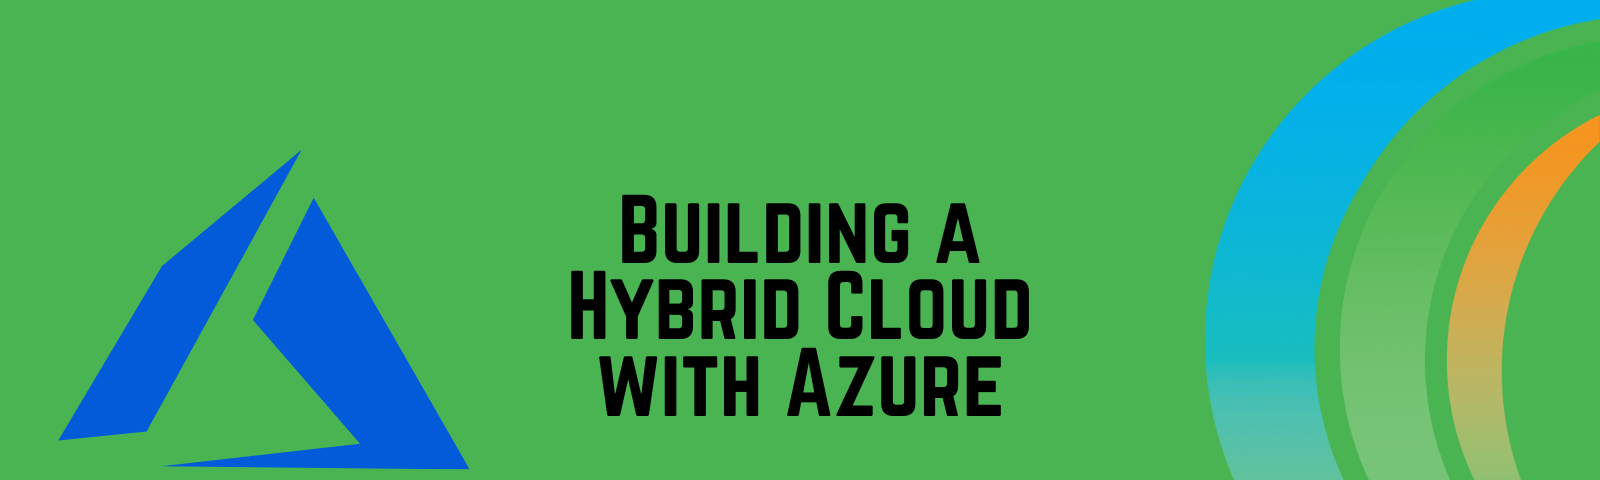 Building a Hybrid Cloud with Azure